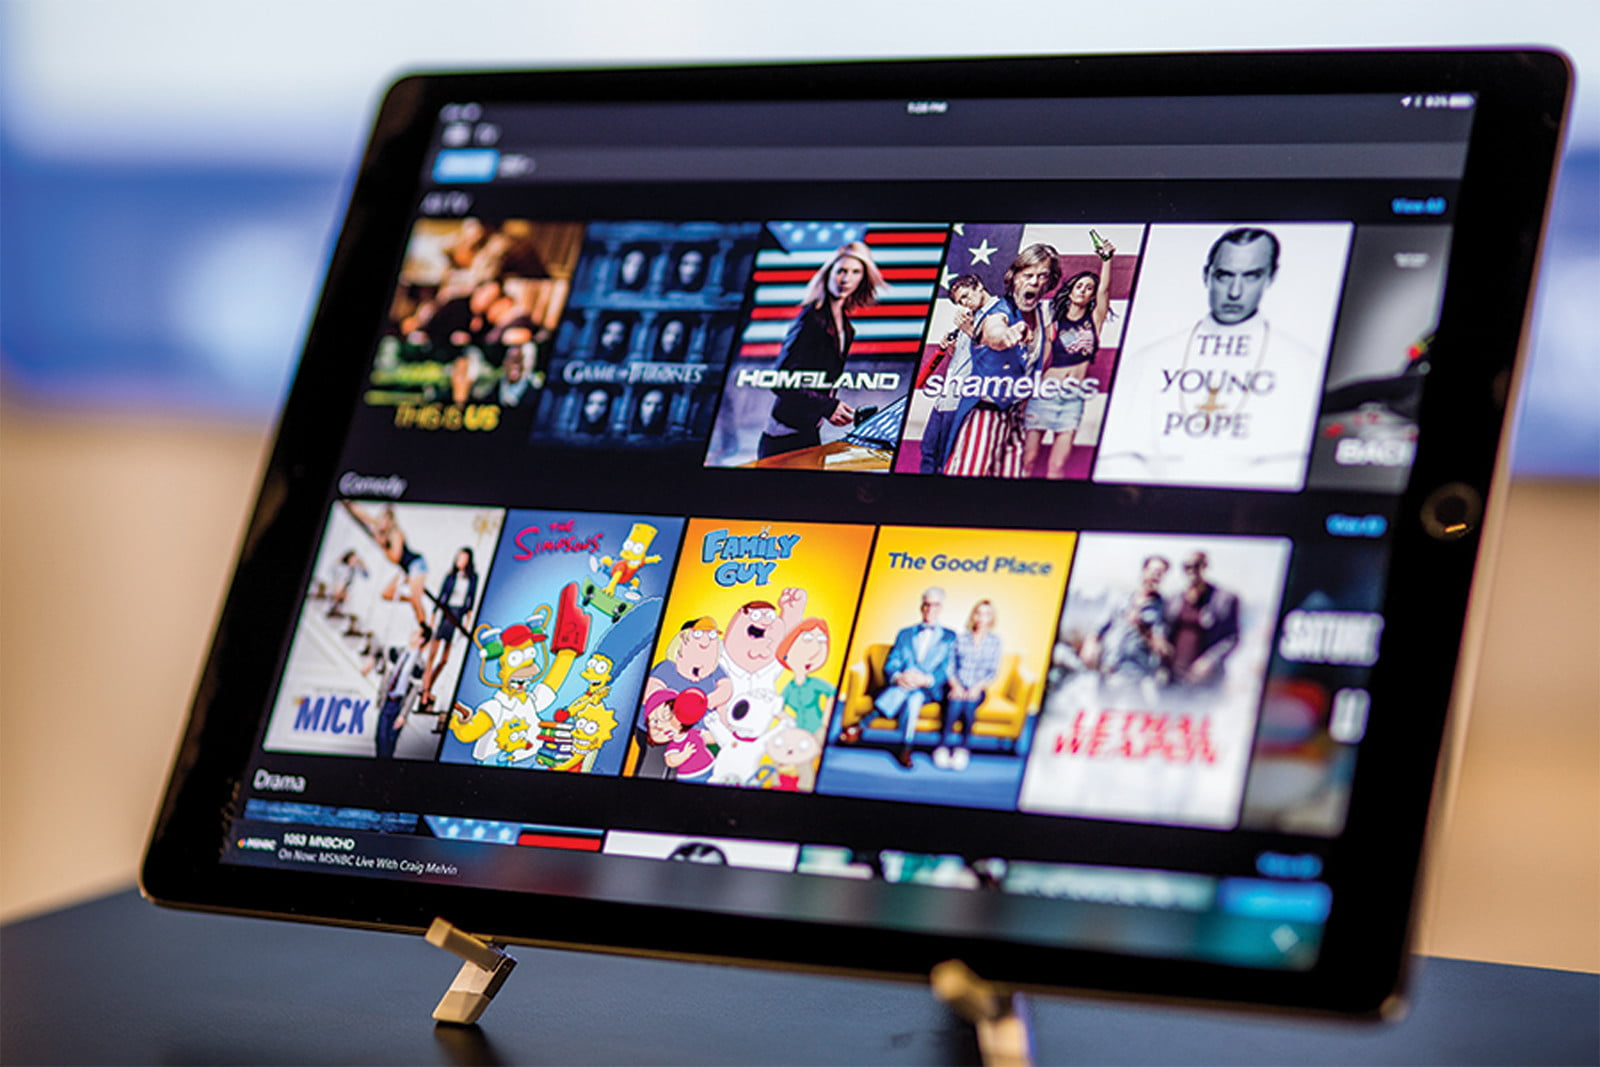 Comcast Xfinity TV: Everything You Need to Know | Digital Trends